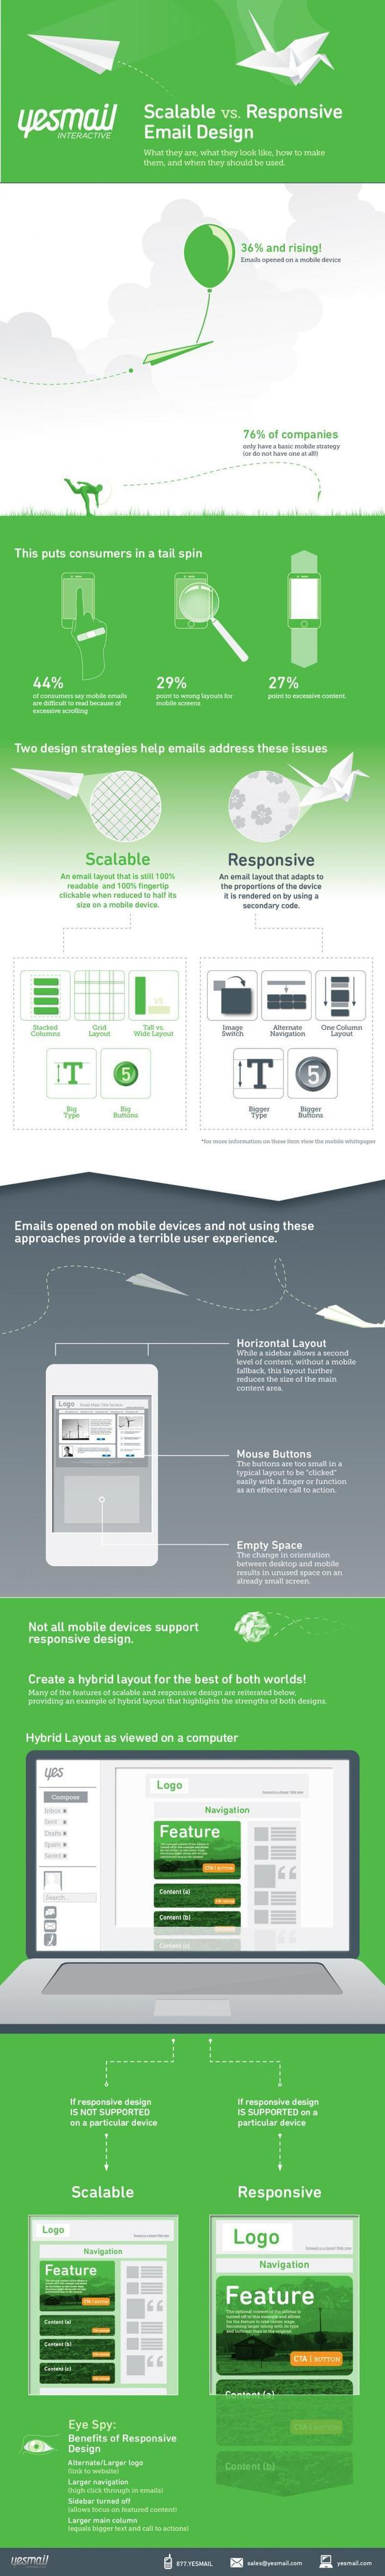 SCALABLE VS. RESPONSIVE EMAIL DESIGN [INFOGRAPHIC]